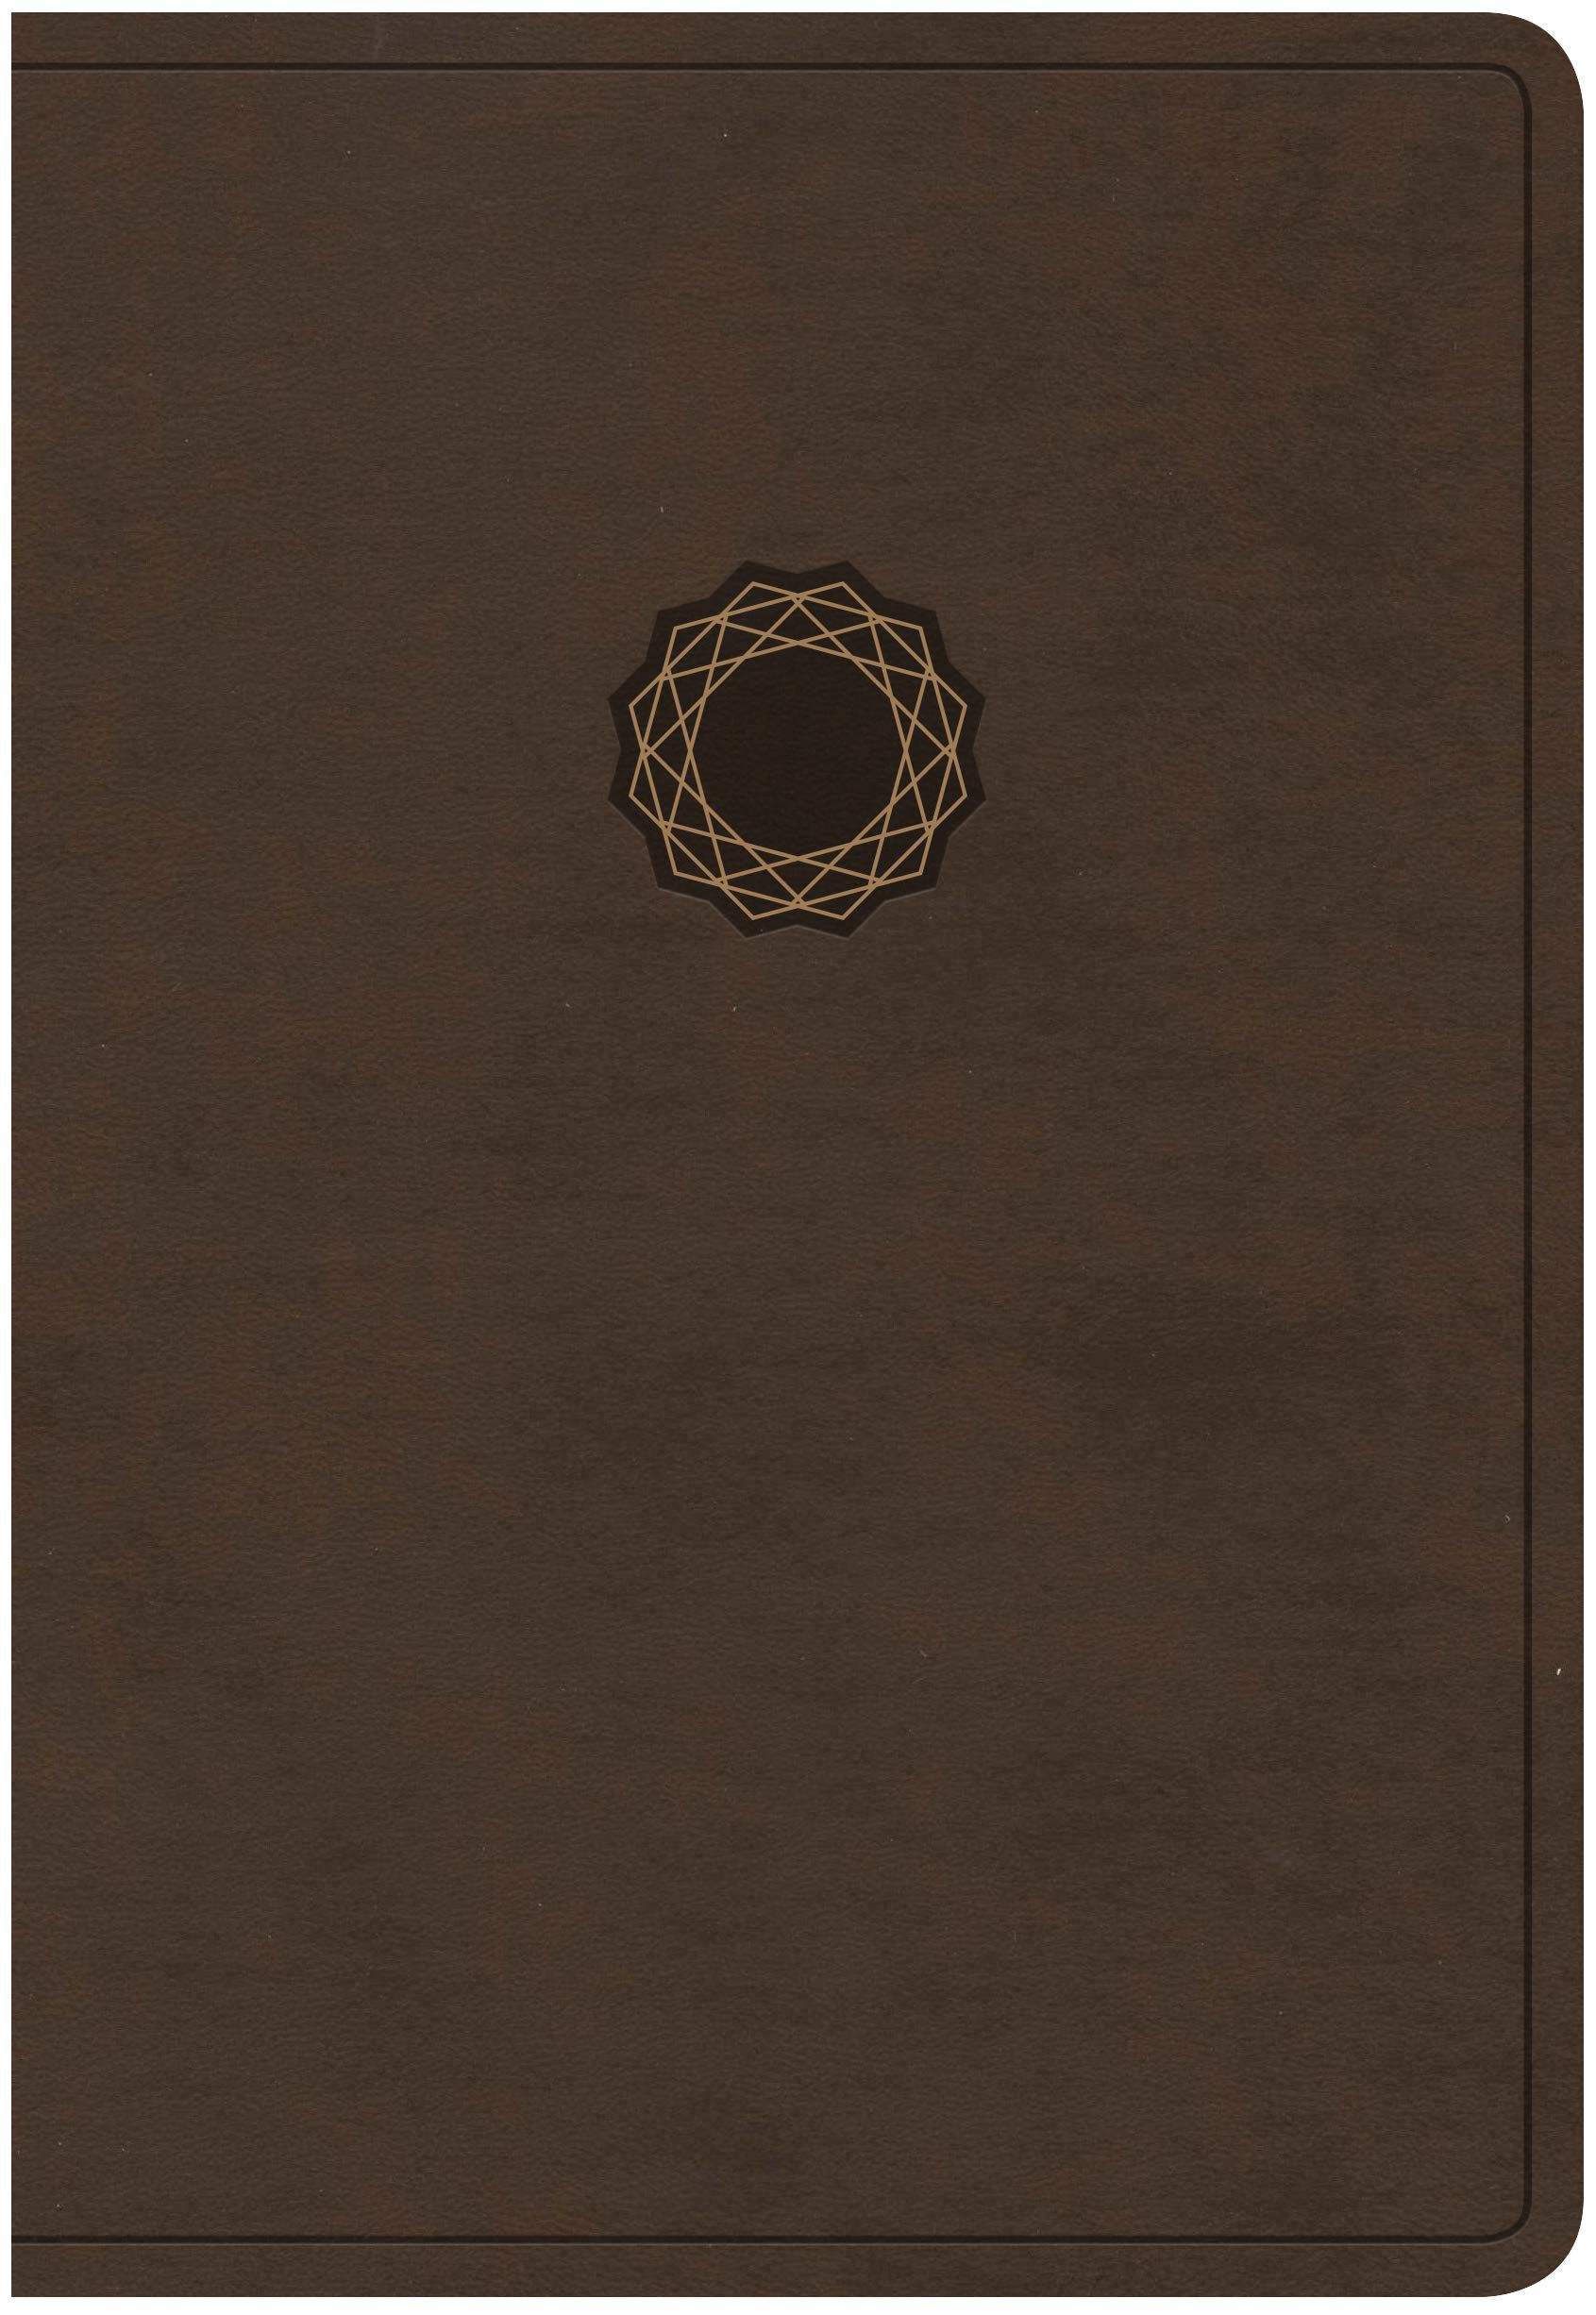 KJV Deluxe Gift Bible, Brown/Tan LeatherTouch